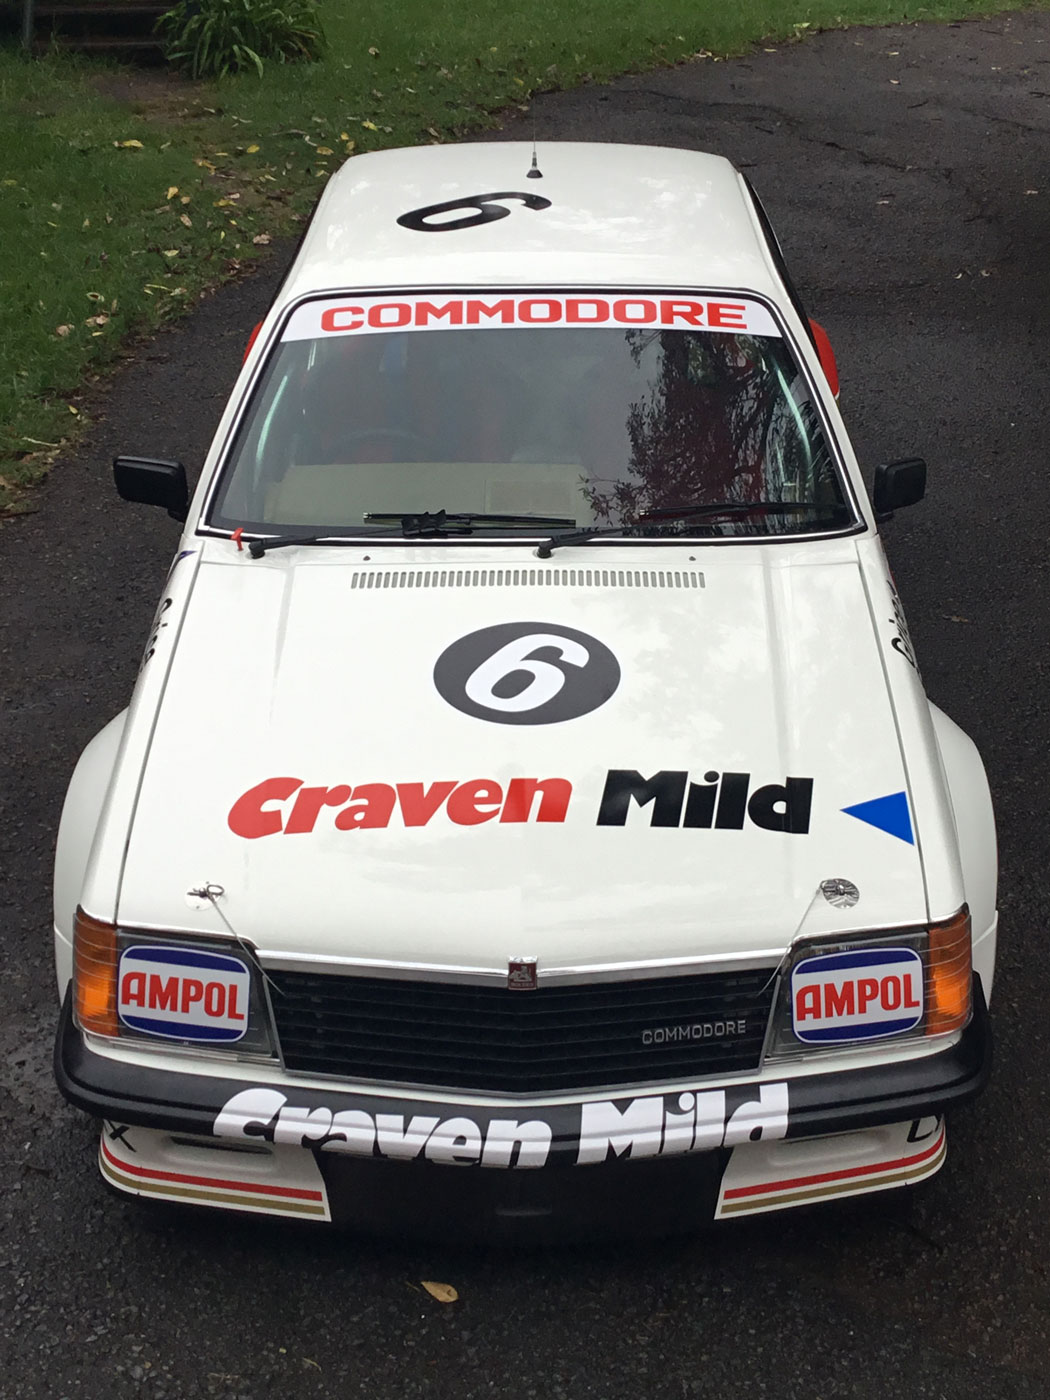 Craven Mild Commodore